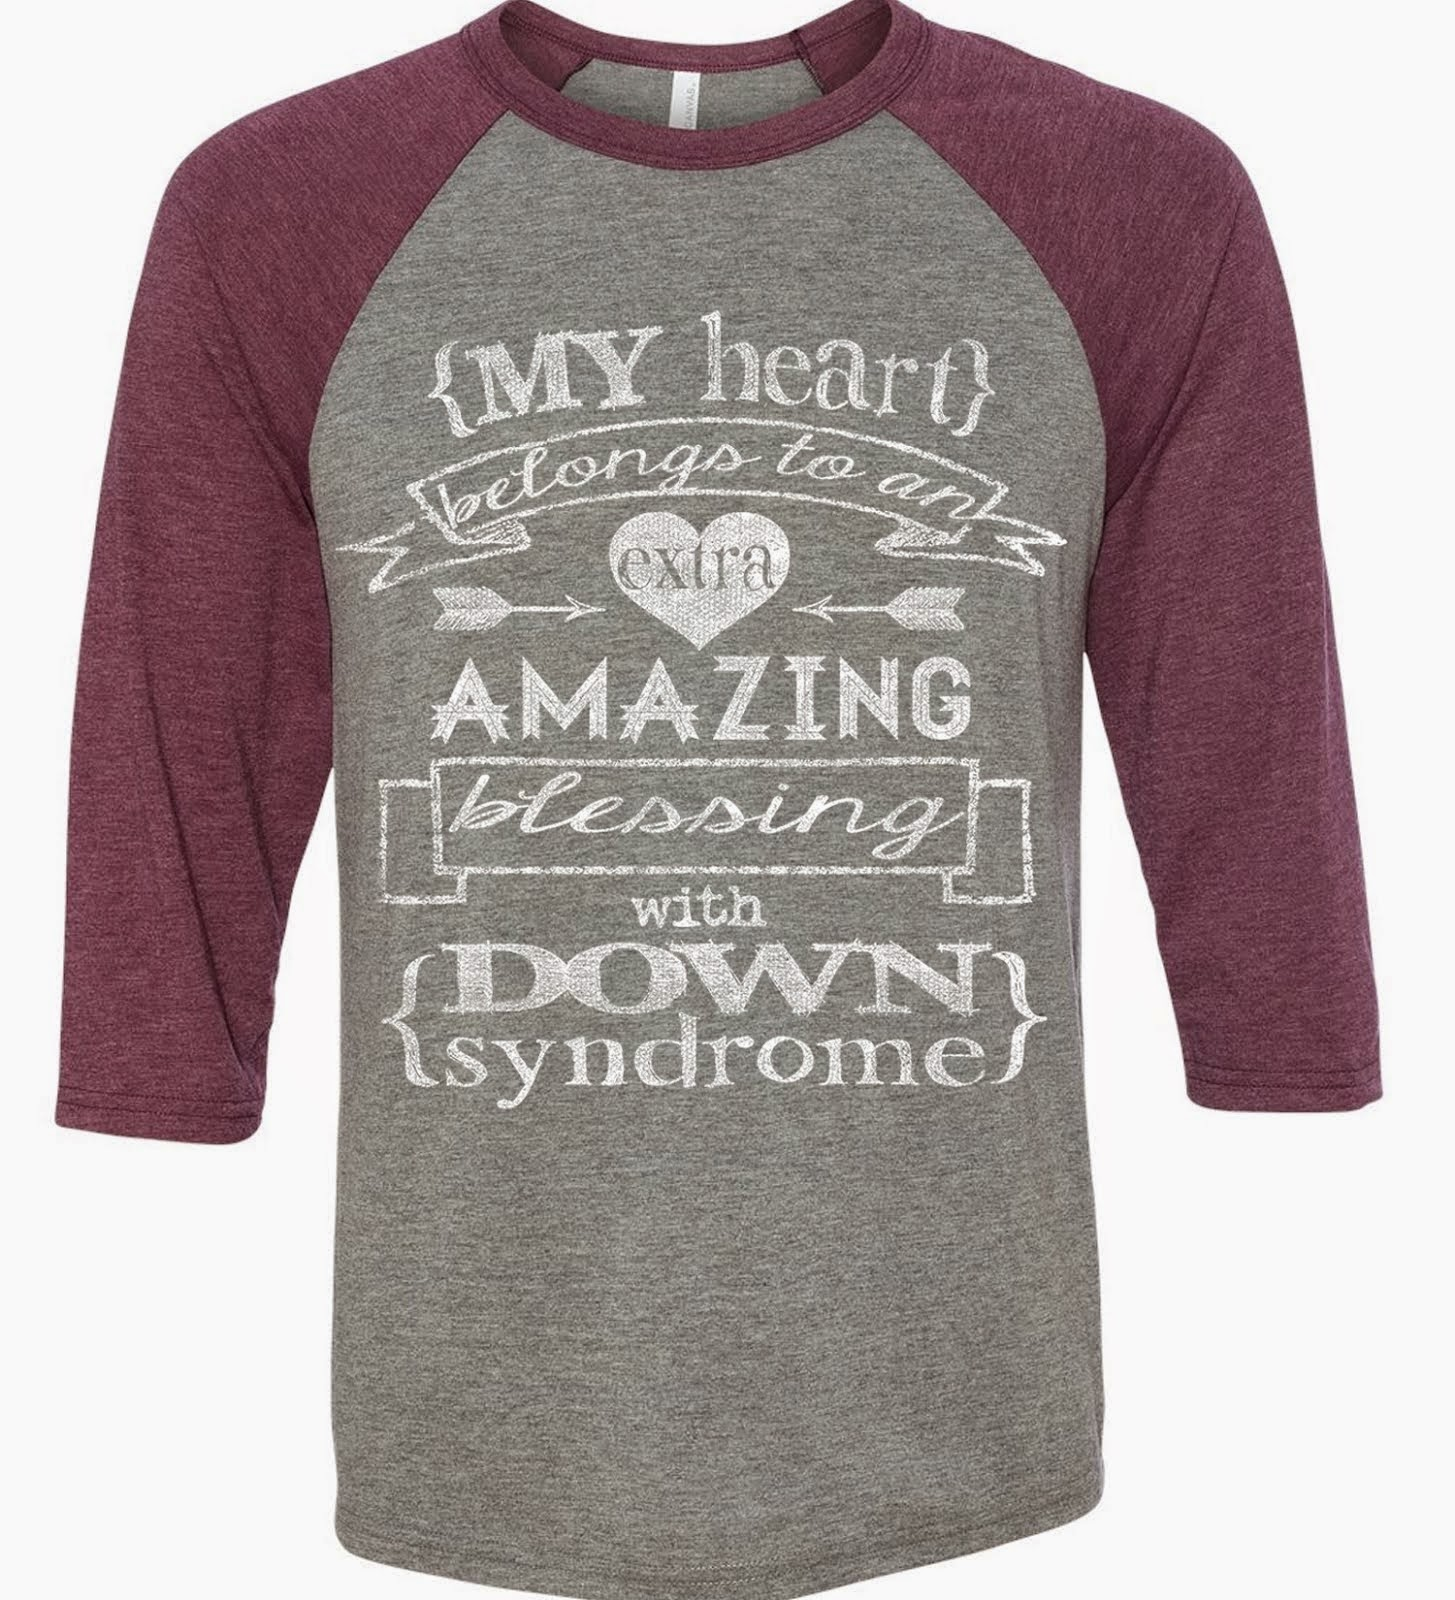 My Heart Belongs Grey/Maroon Triblend Raglan